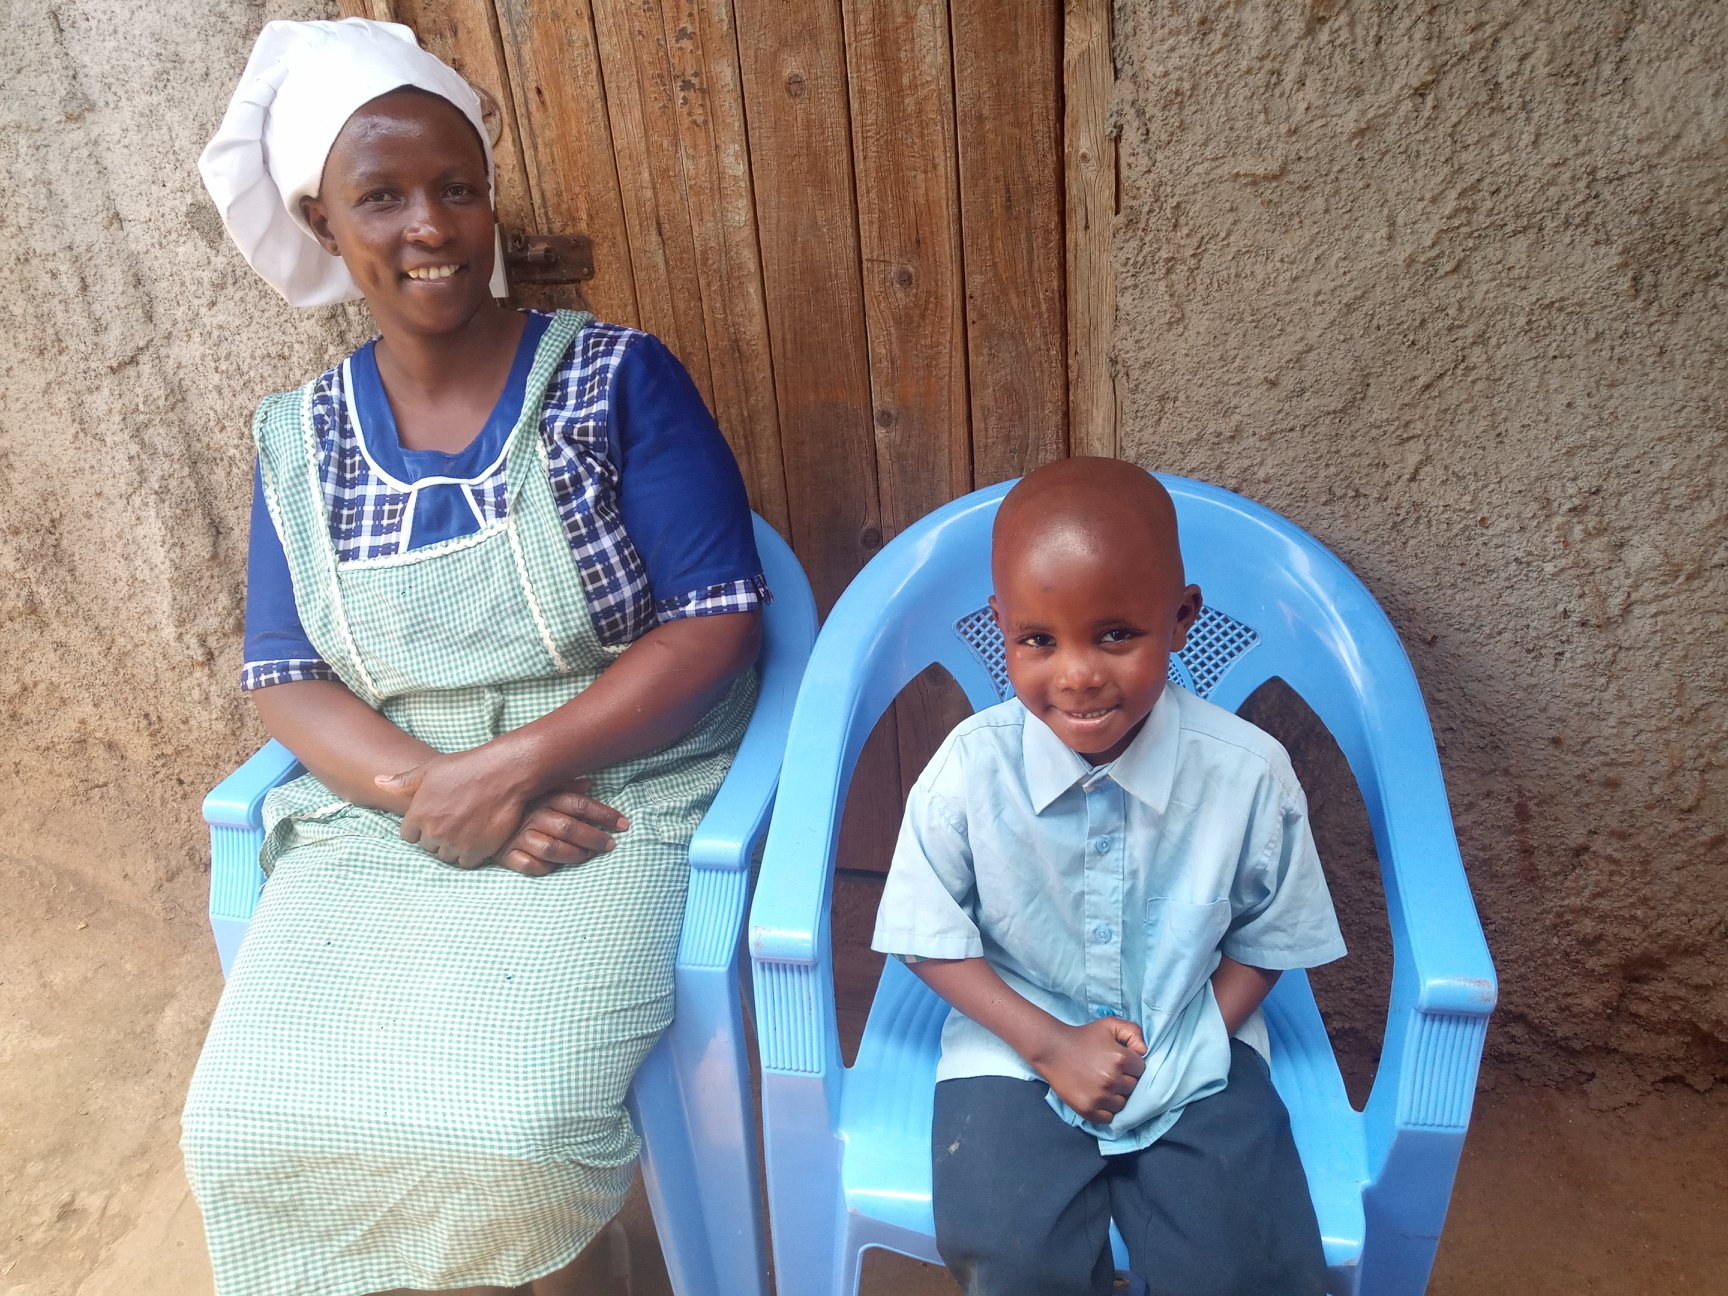 Widow sponsorship has significant impact in Kenya's slums